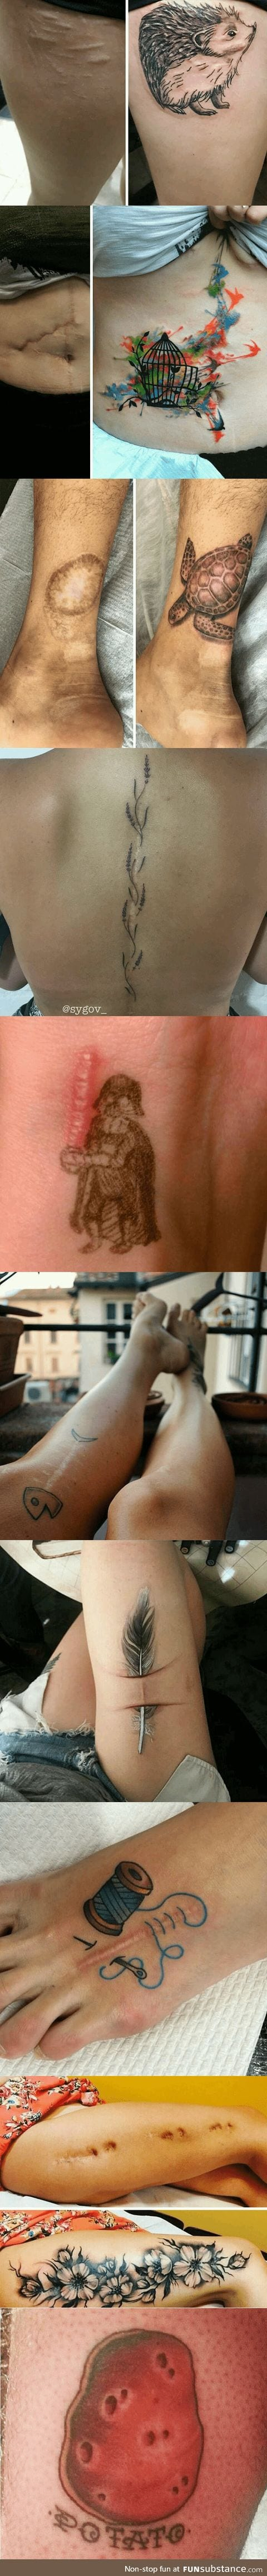 Amazing tattoos that turn scars into Works of Art